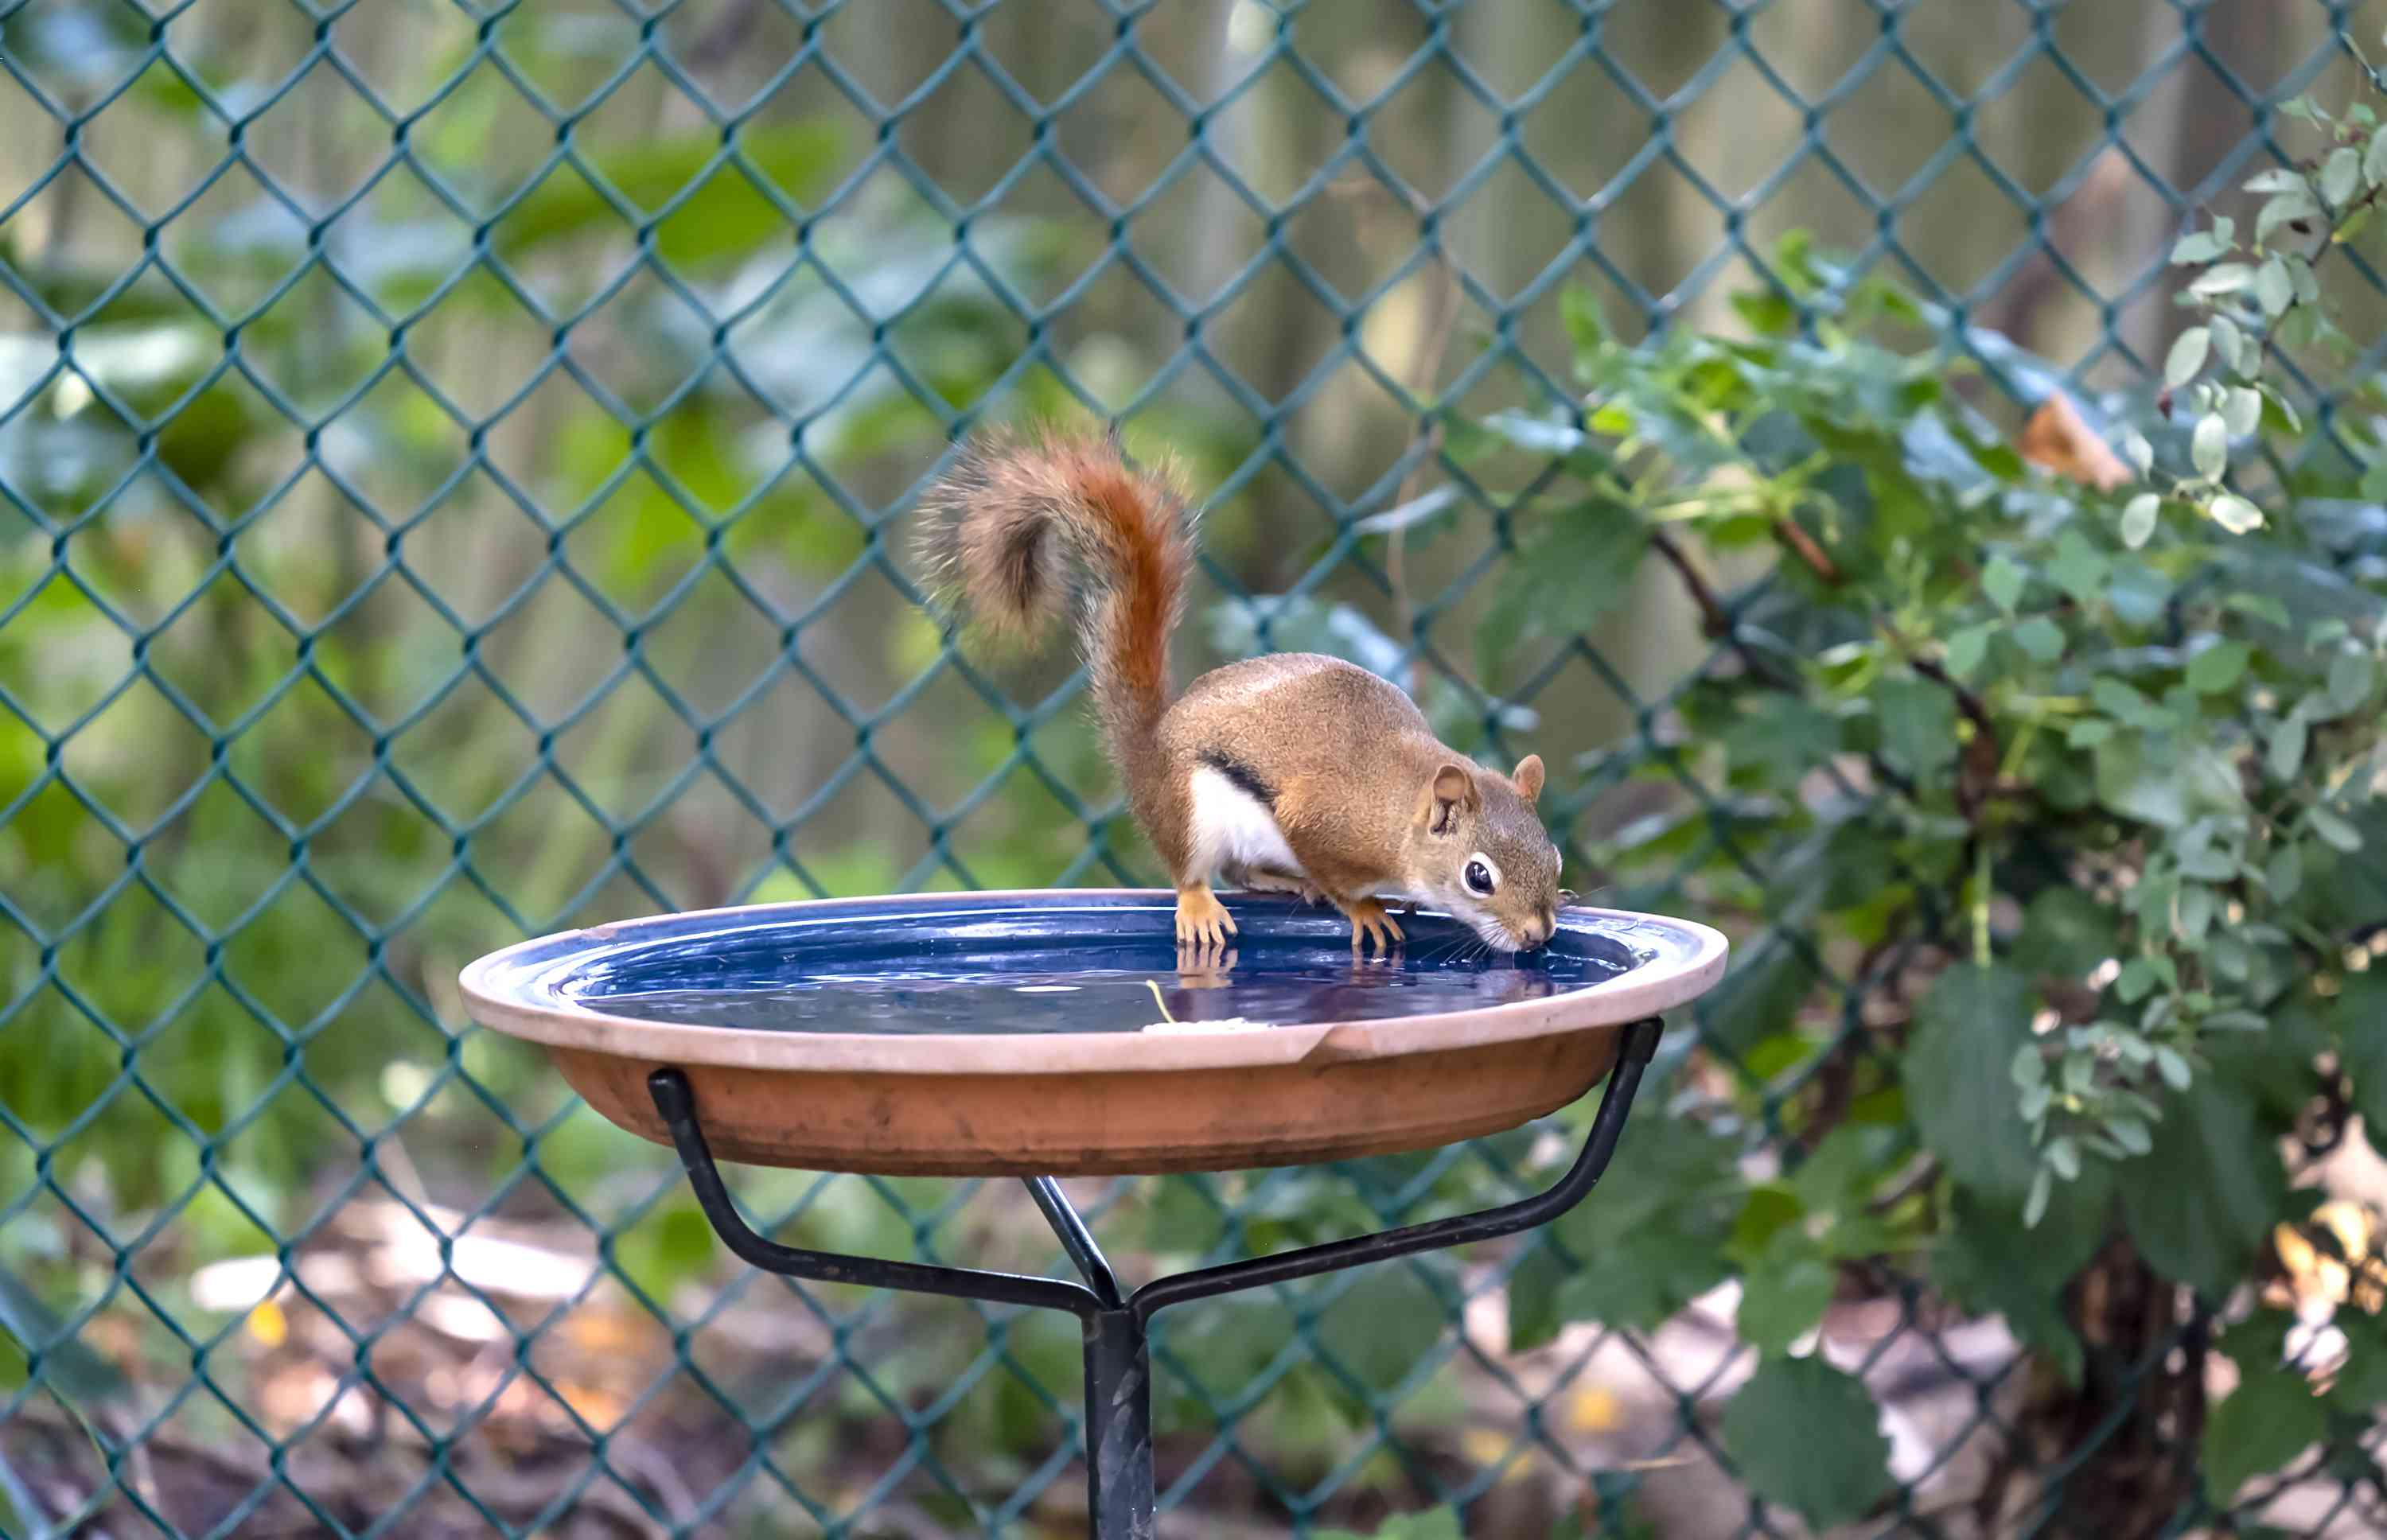 An American Red Squirrel Drinking from a Bird Bath